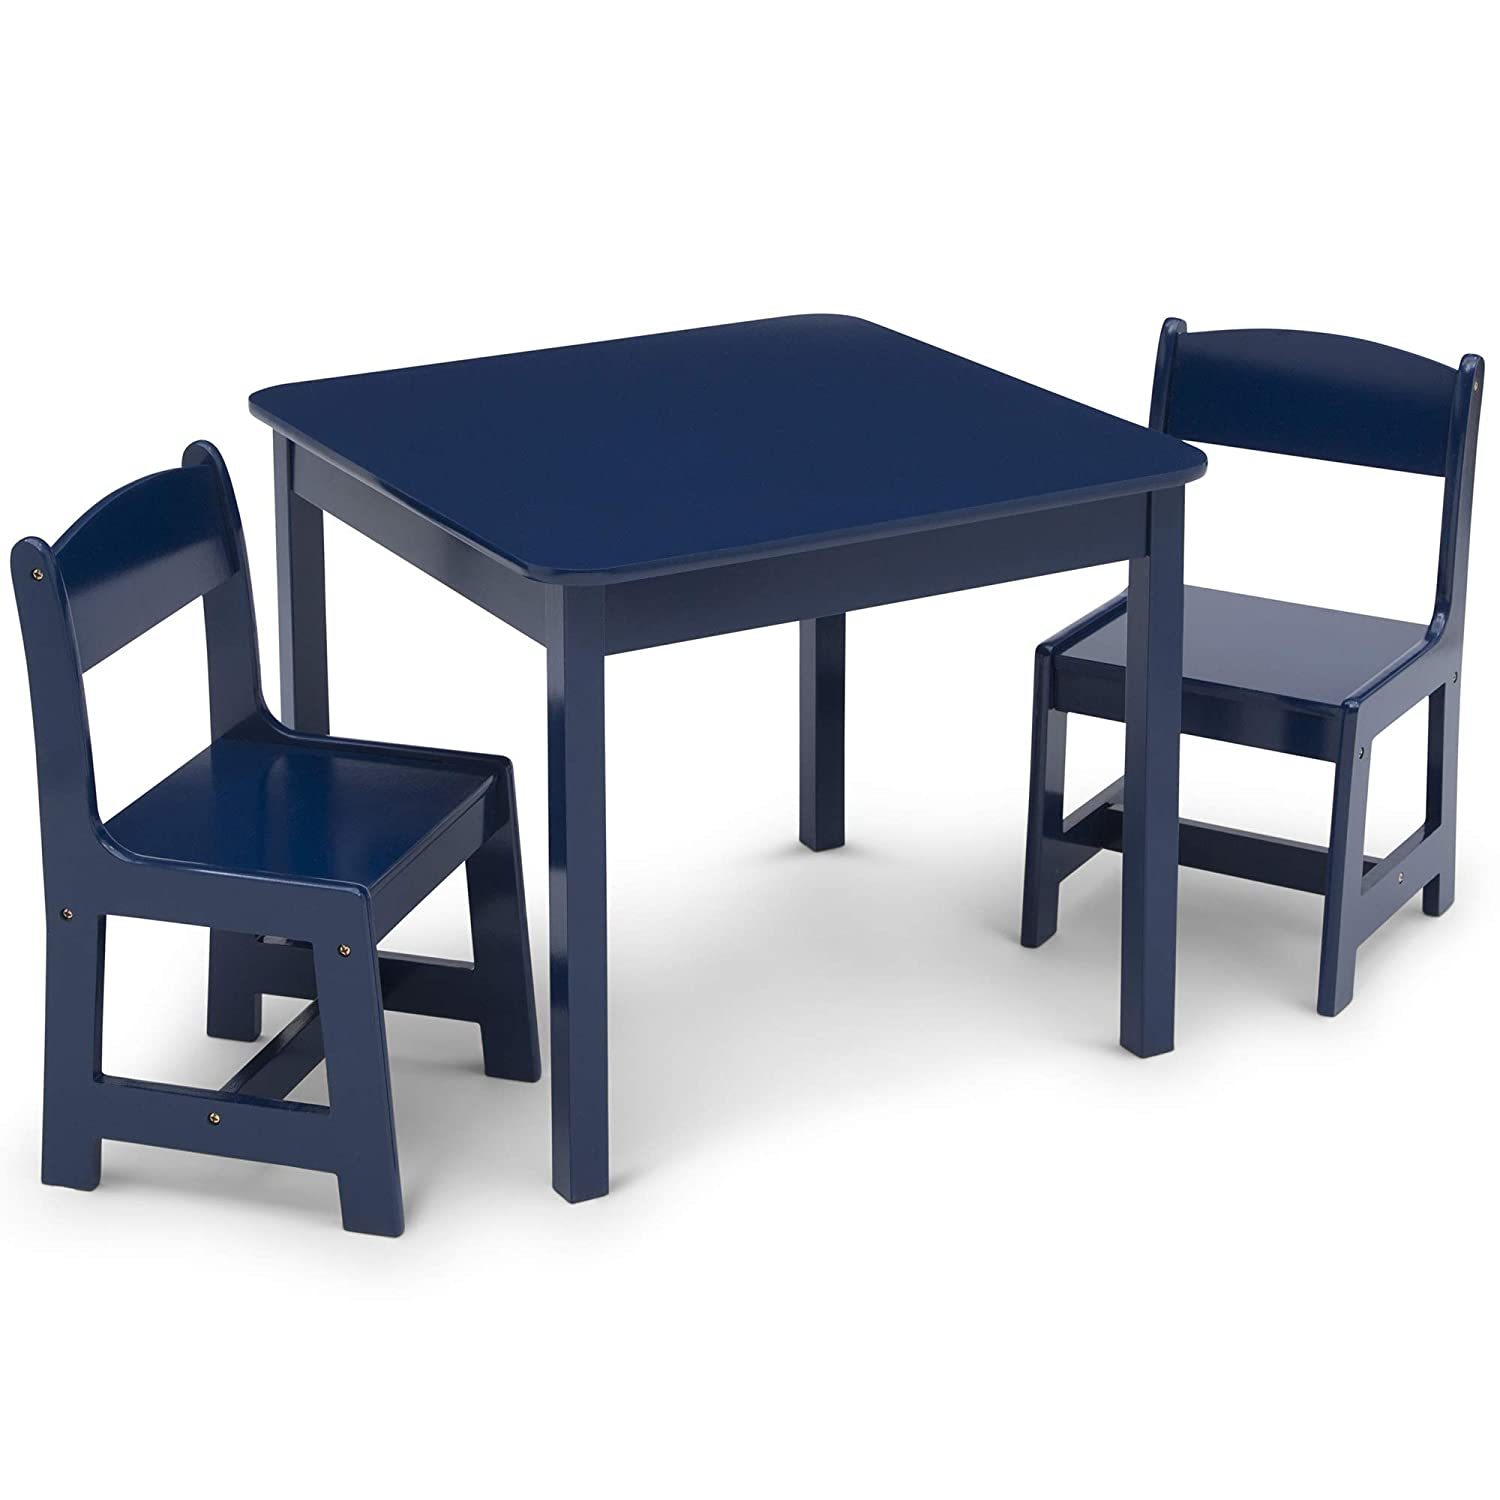 Delta specialty shop Children MySize Kids Wood Table Great interest and Set Chair Chairs In 2